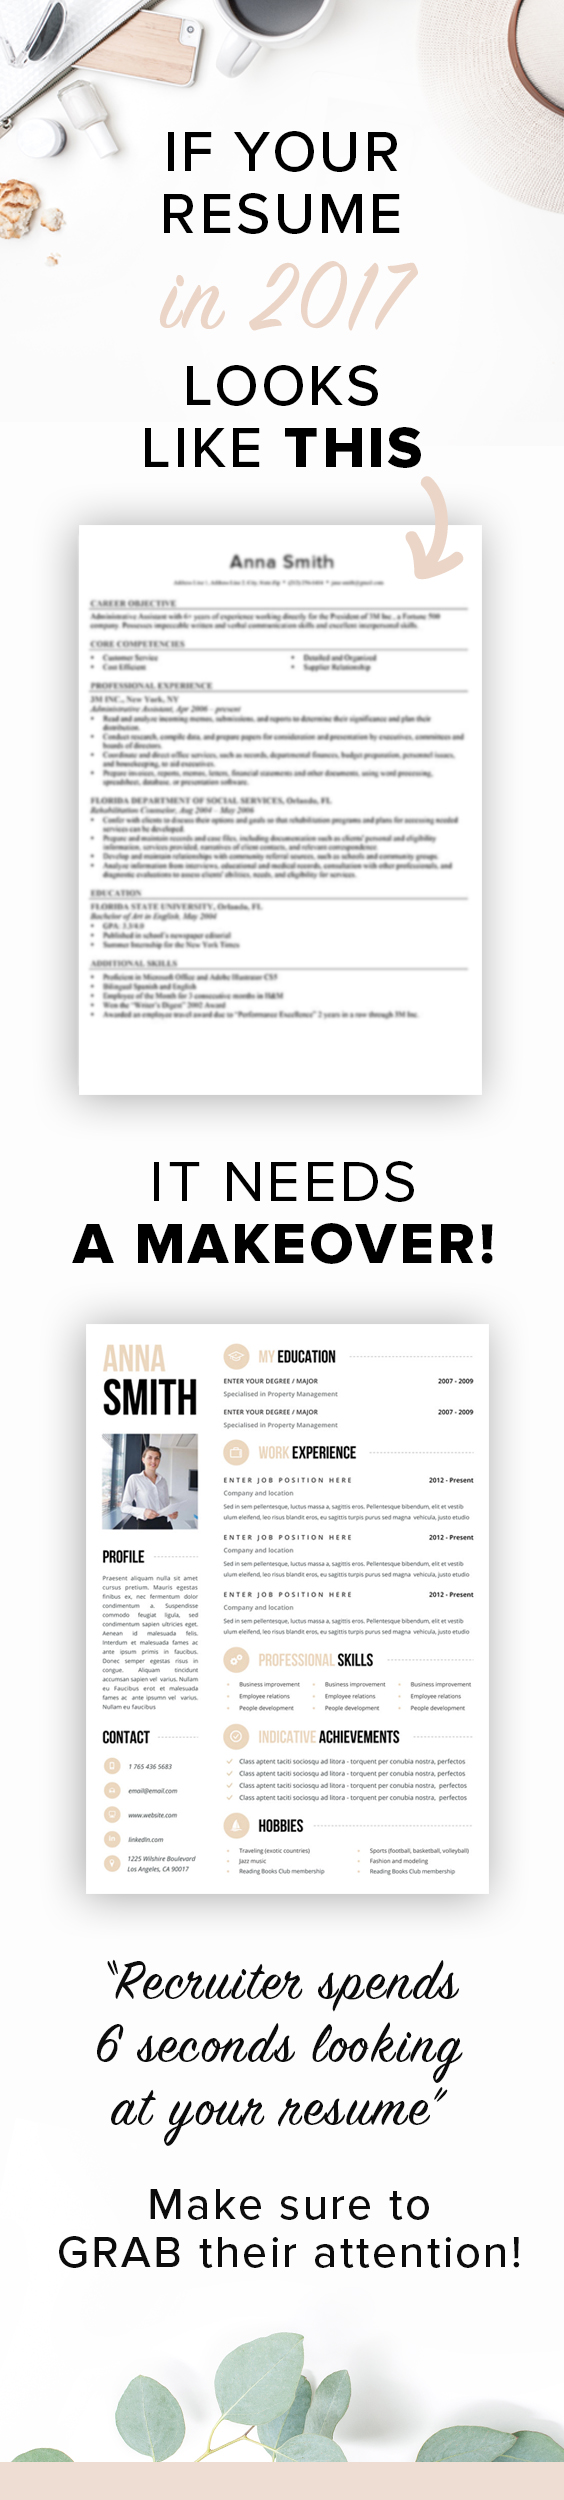 give your resume a makeover with those writing tips